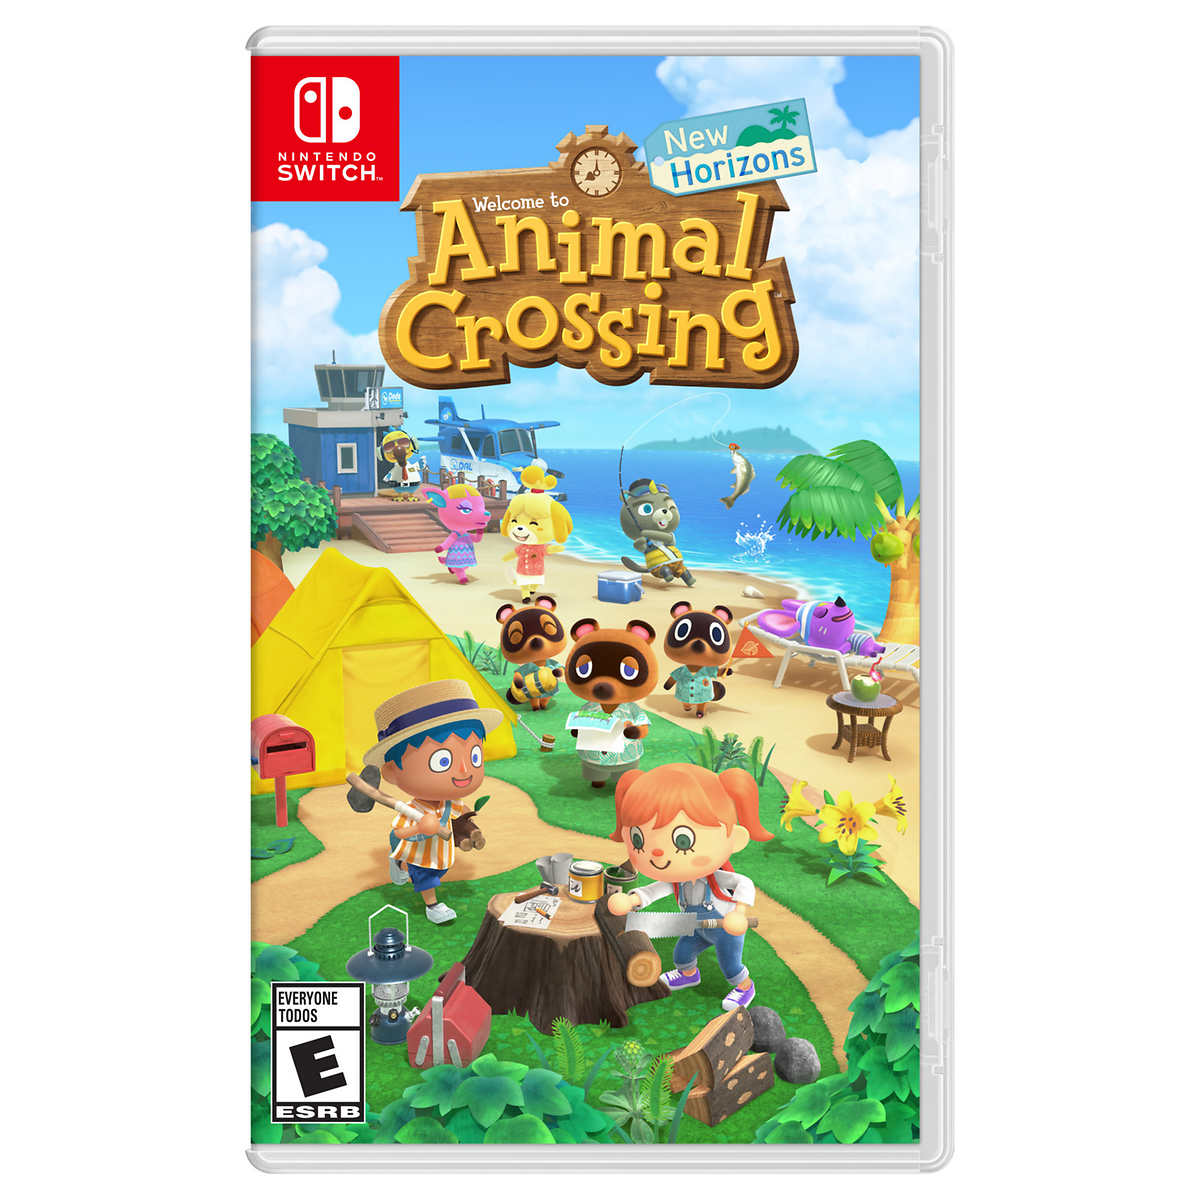 Animal Crossing New Horizons Nintendo Switch Video Game Find nintendo switch in canada | visit kijiji classifieds to buy, sell, or trade almost anything! animal crossing new horizons nintendo switch video game